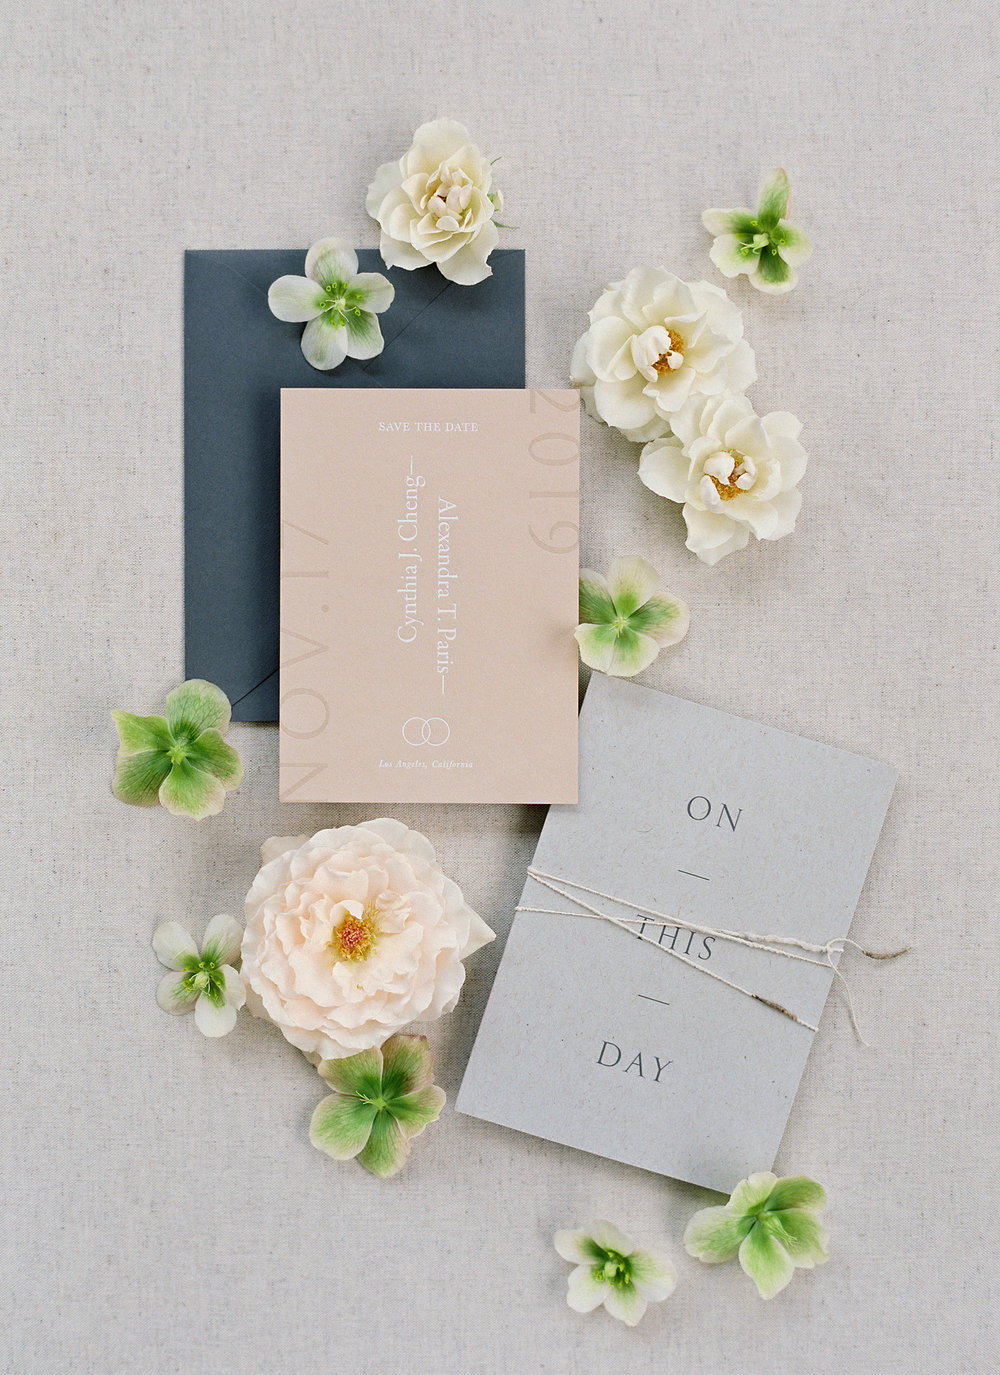 7-Photo_by_Christine_Donee-Invitation_Suite_by_Owl_Post-Floral_by_Ellamah.jpg